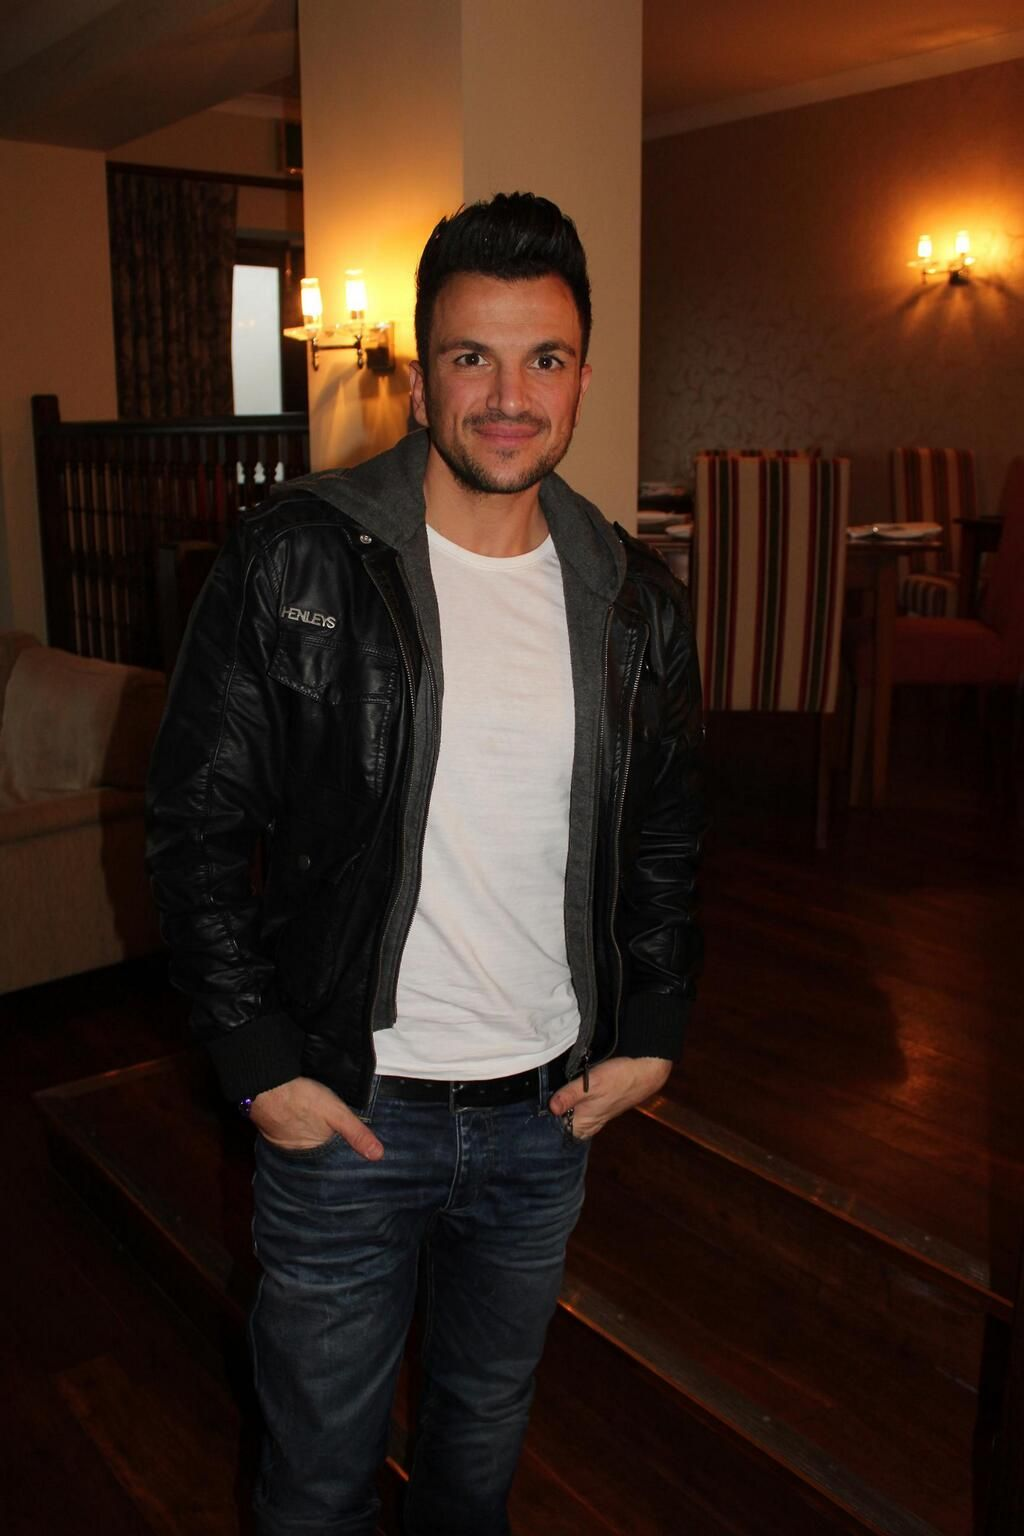 Peter Andre at Ashdown Park  Peter Andre  Pinterest  Peter andre